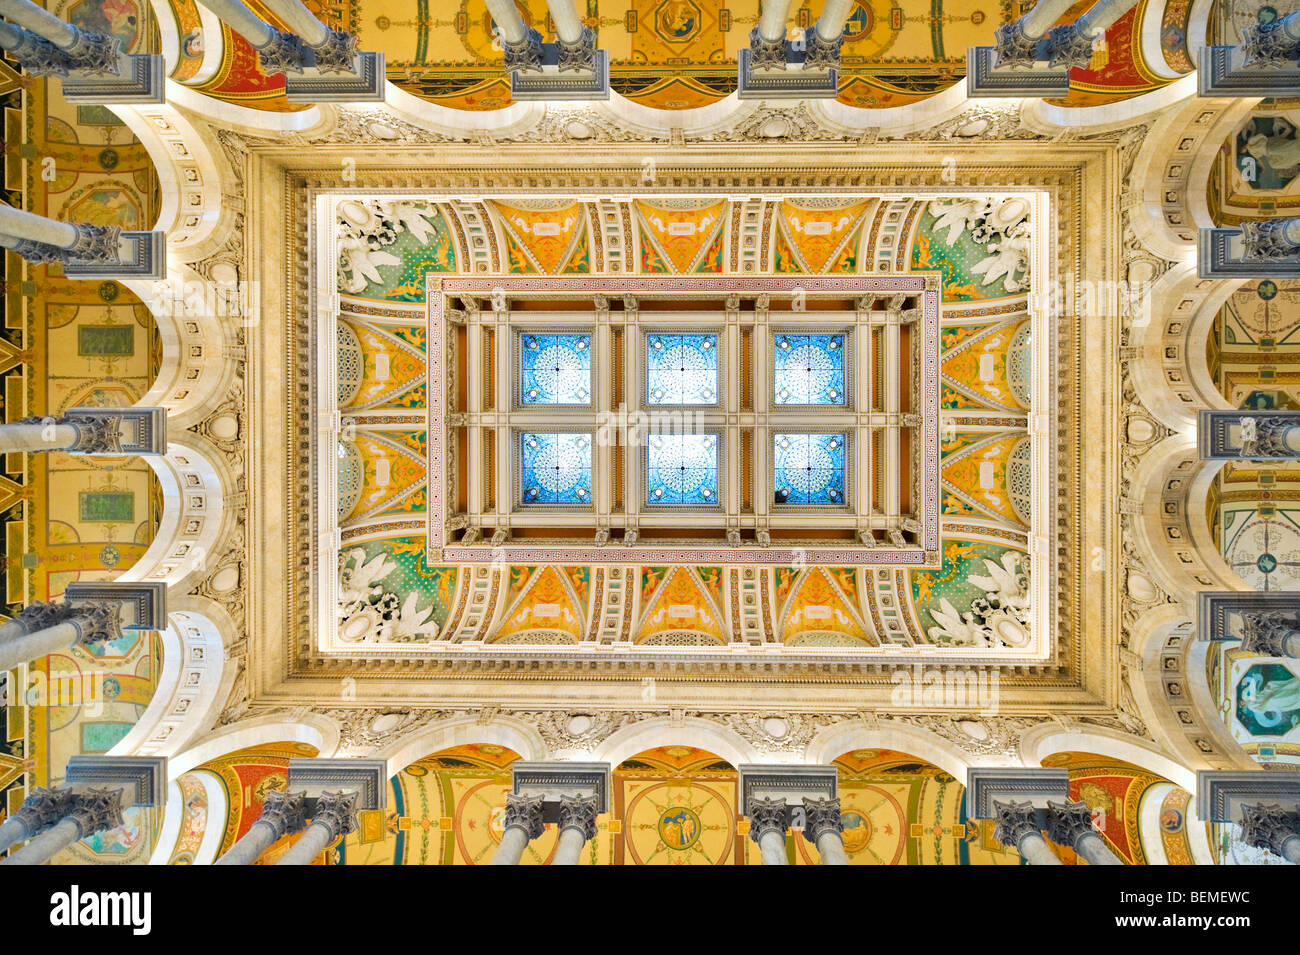 Ceiling of the Great Hall in the Thomas Jefferson Building, Library of Congress, Washington DC, USA - Stock Image